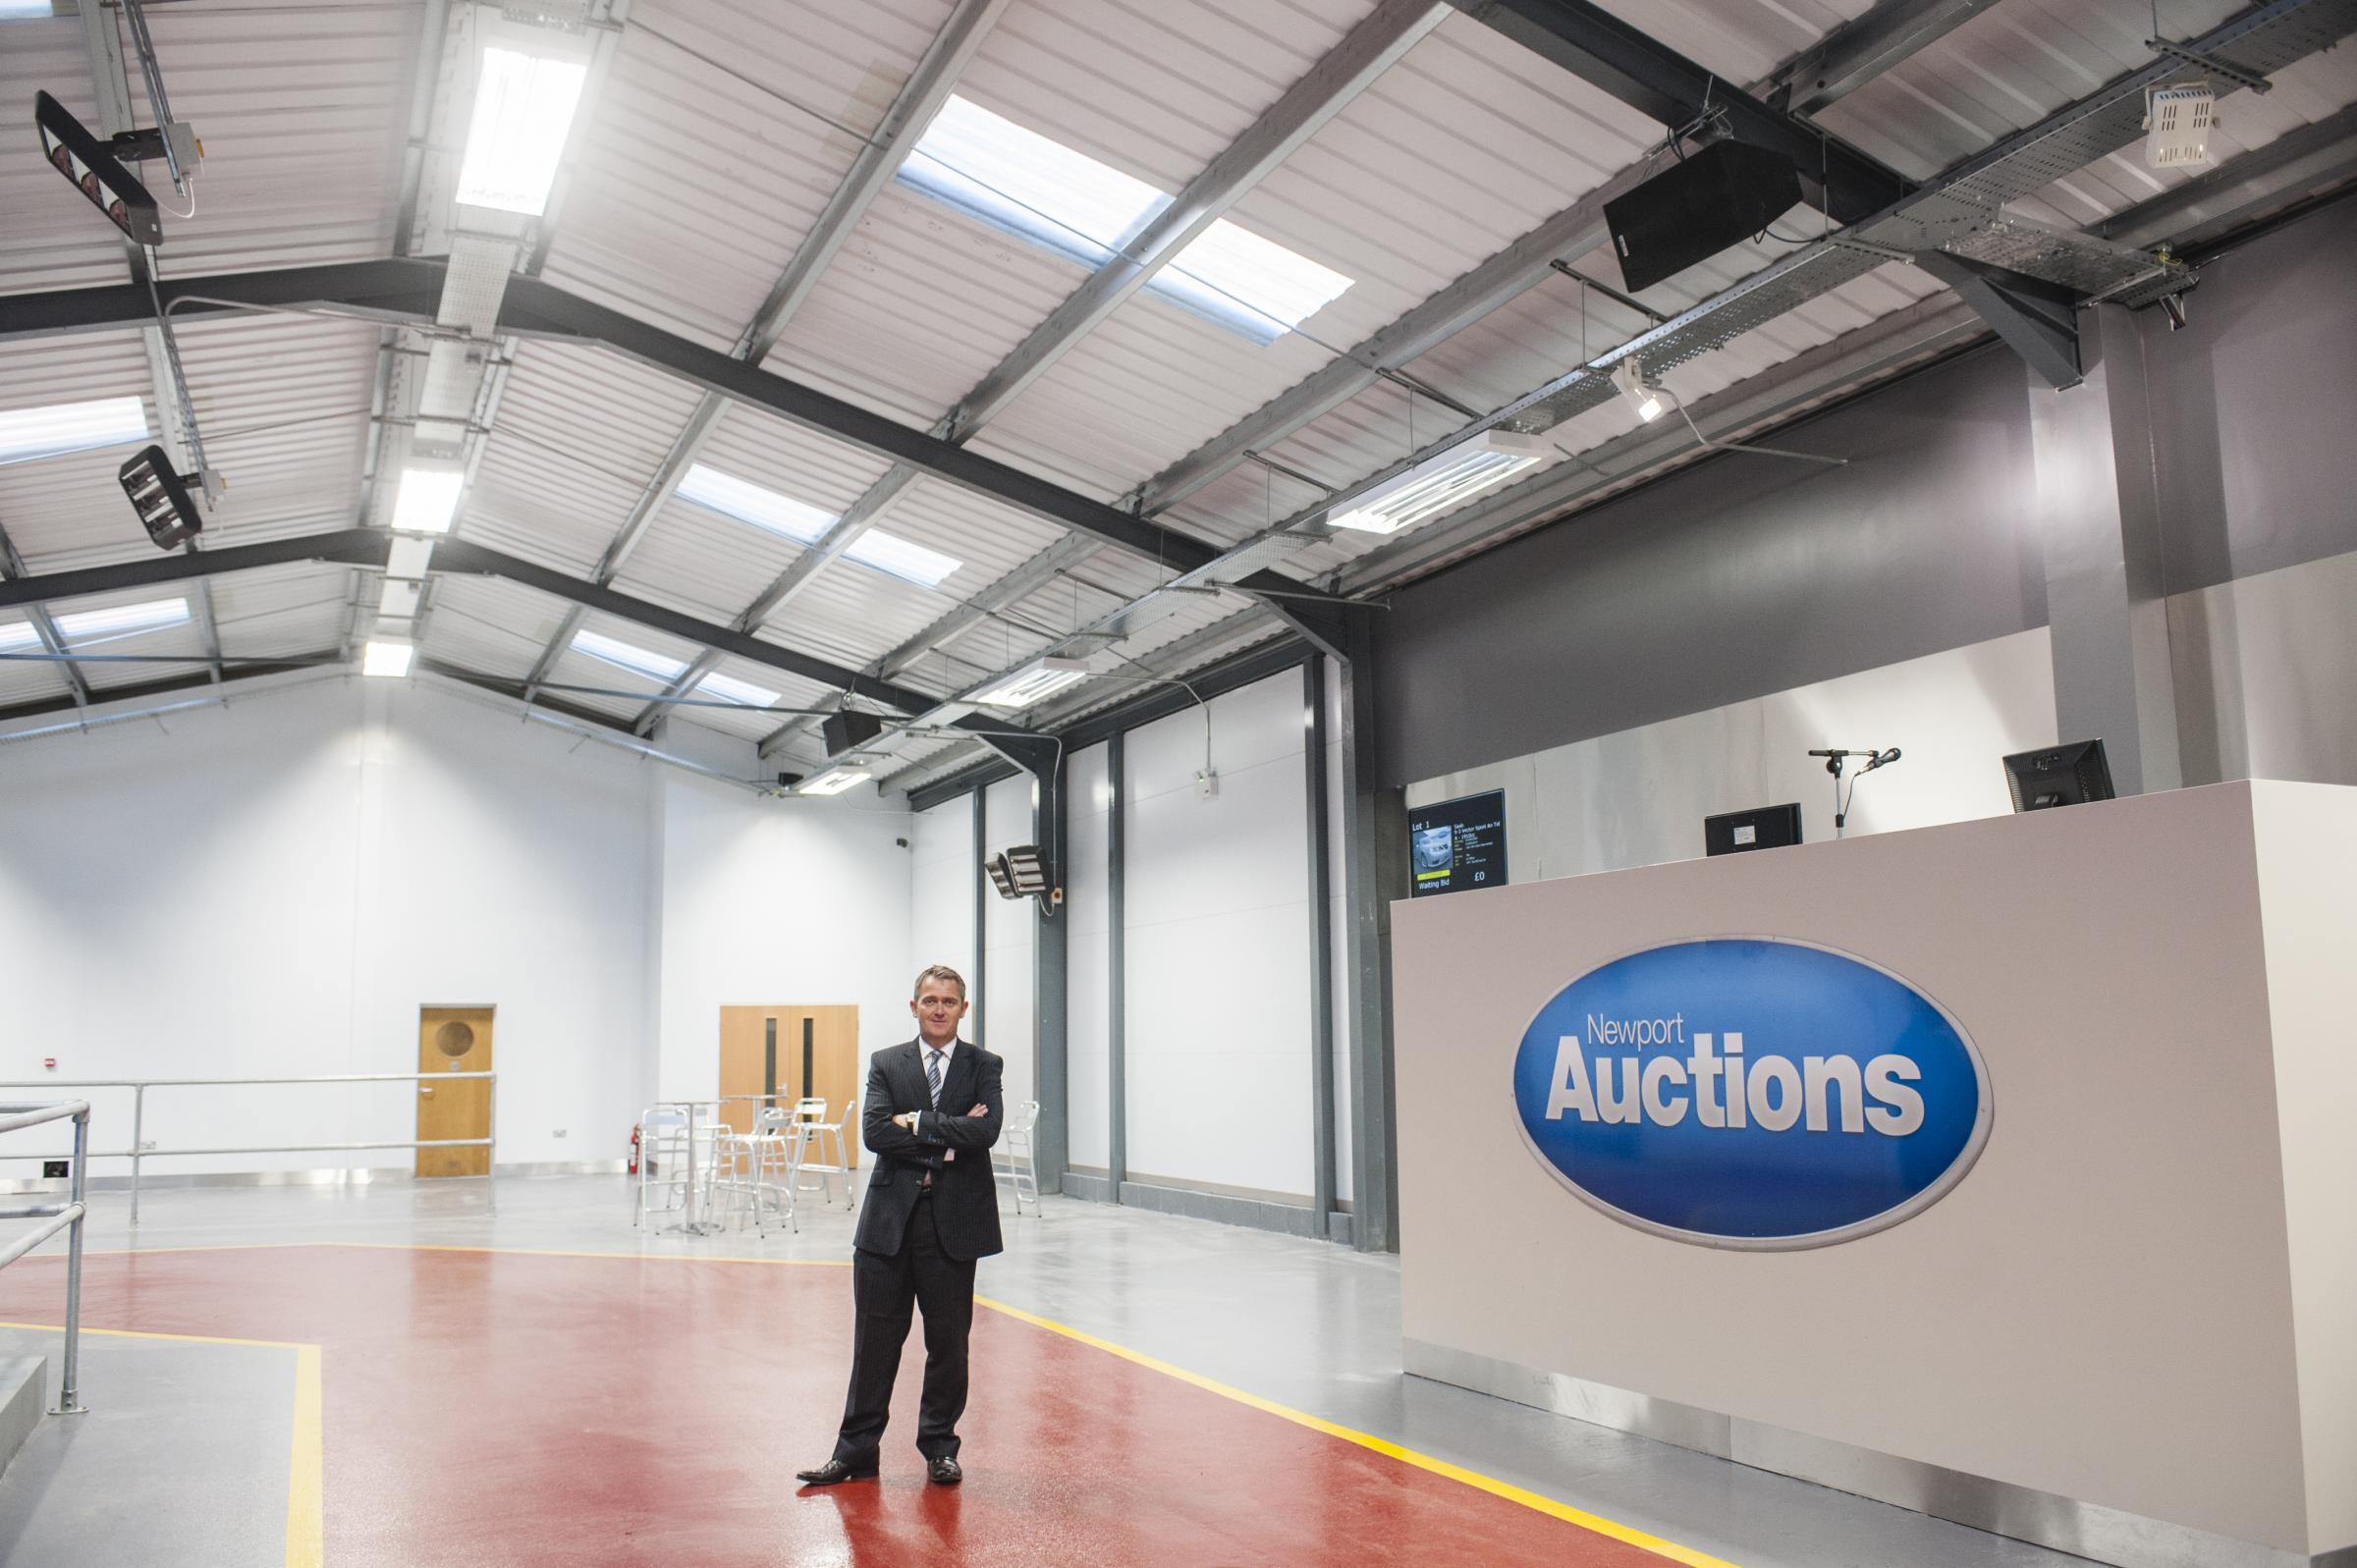 Jon Collingbourne, managing director of Newport Auctions, who is hanging up his gavel after almost 30 years after selling the business to Wilsons Auctions